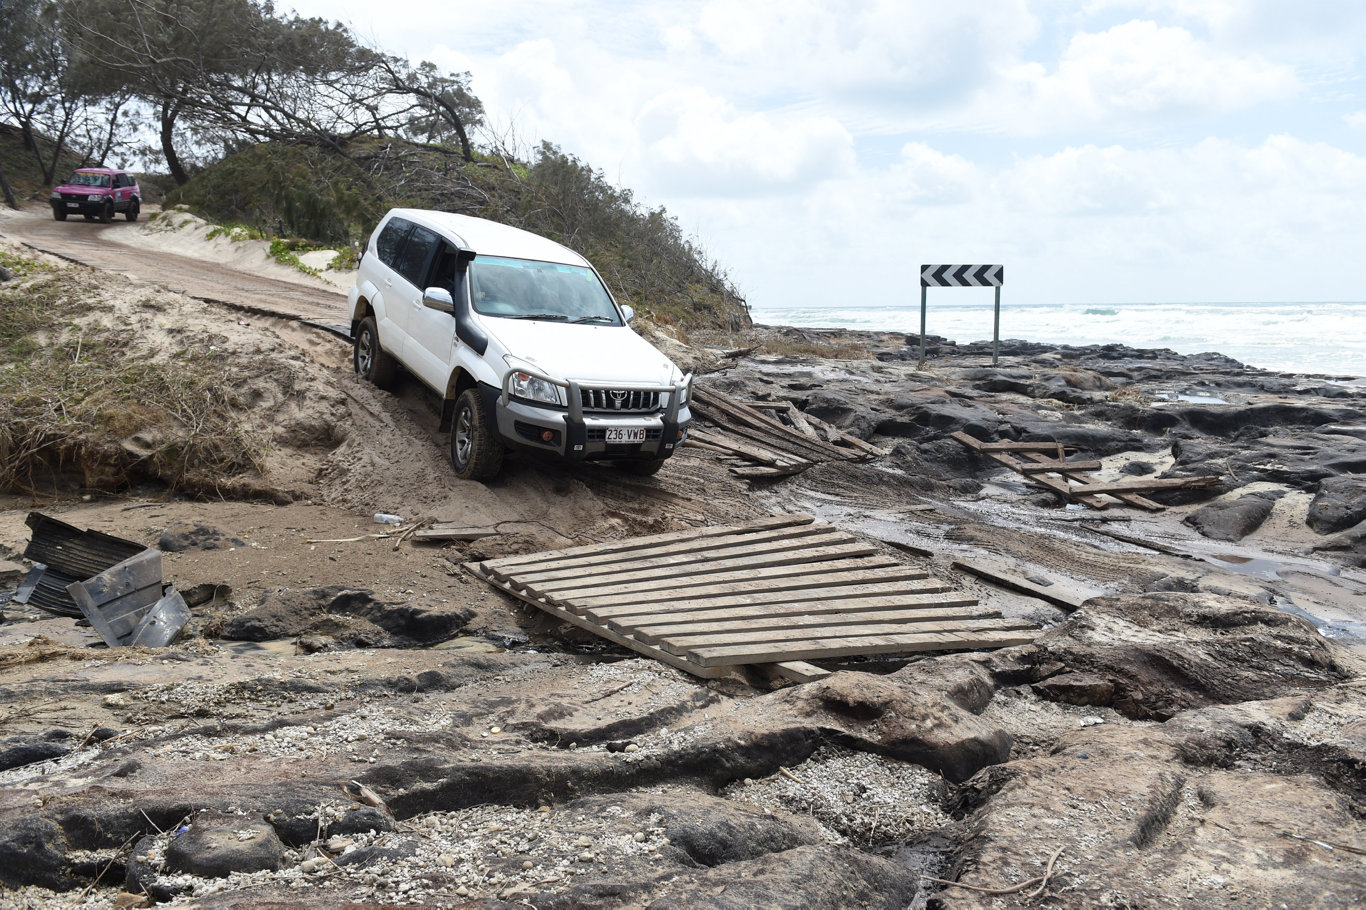 Driving on Fraser Island at Poyungan Rocks after a cyclone earlier this year.